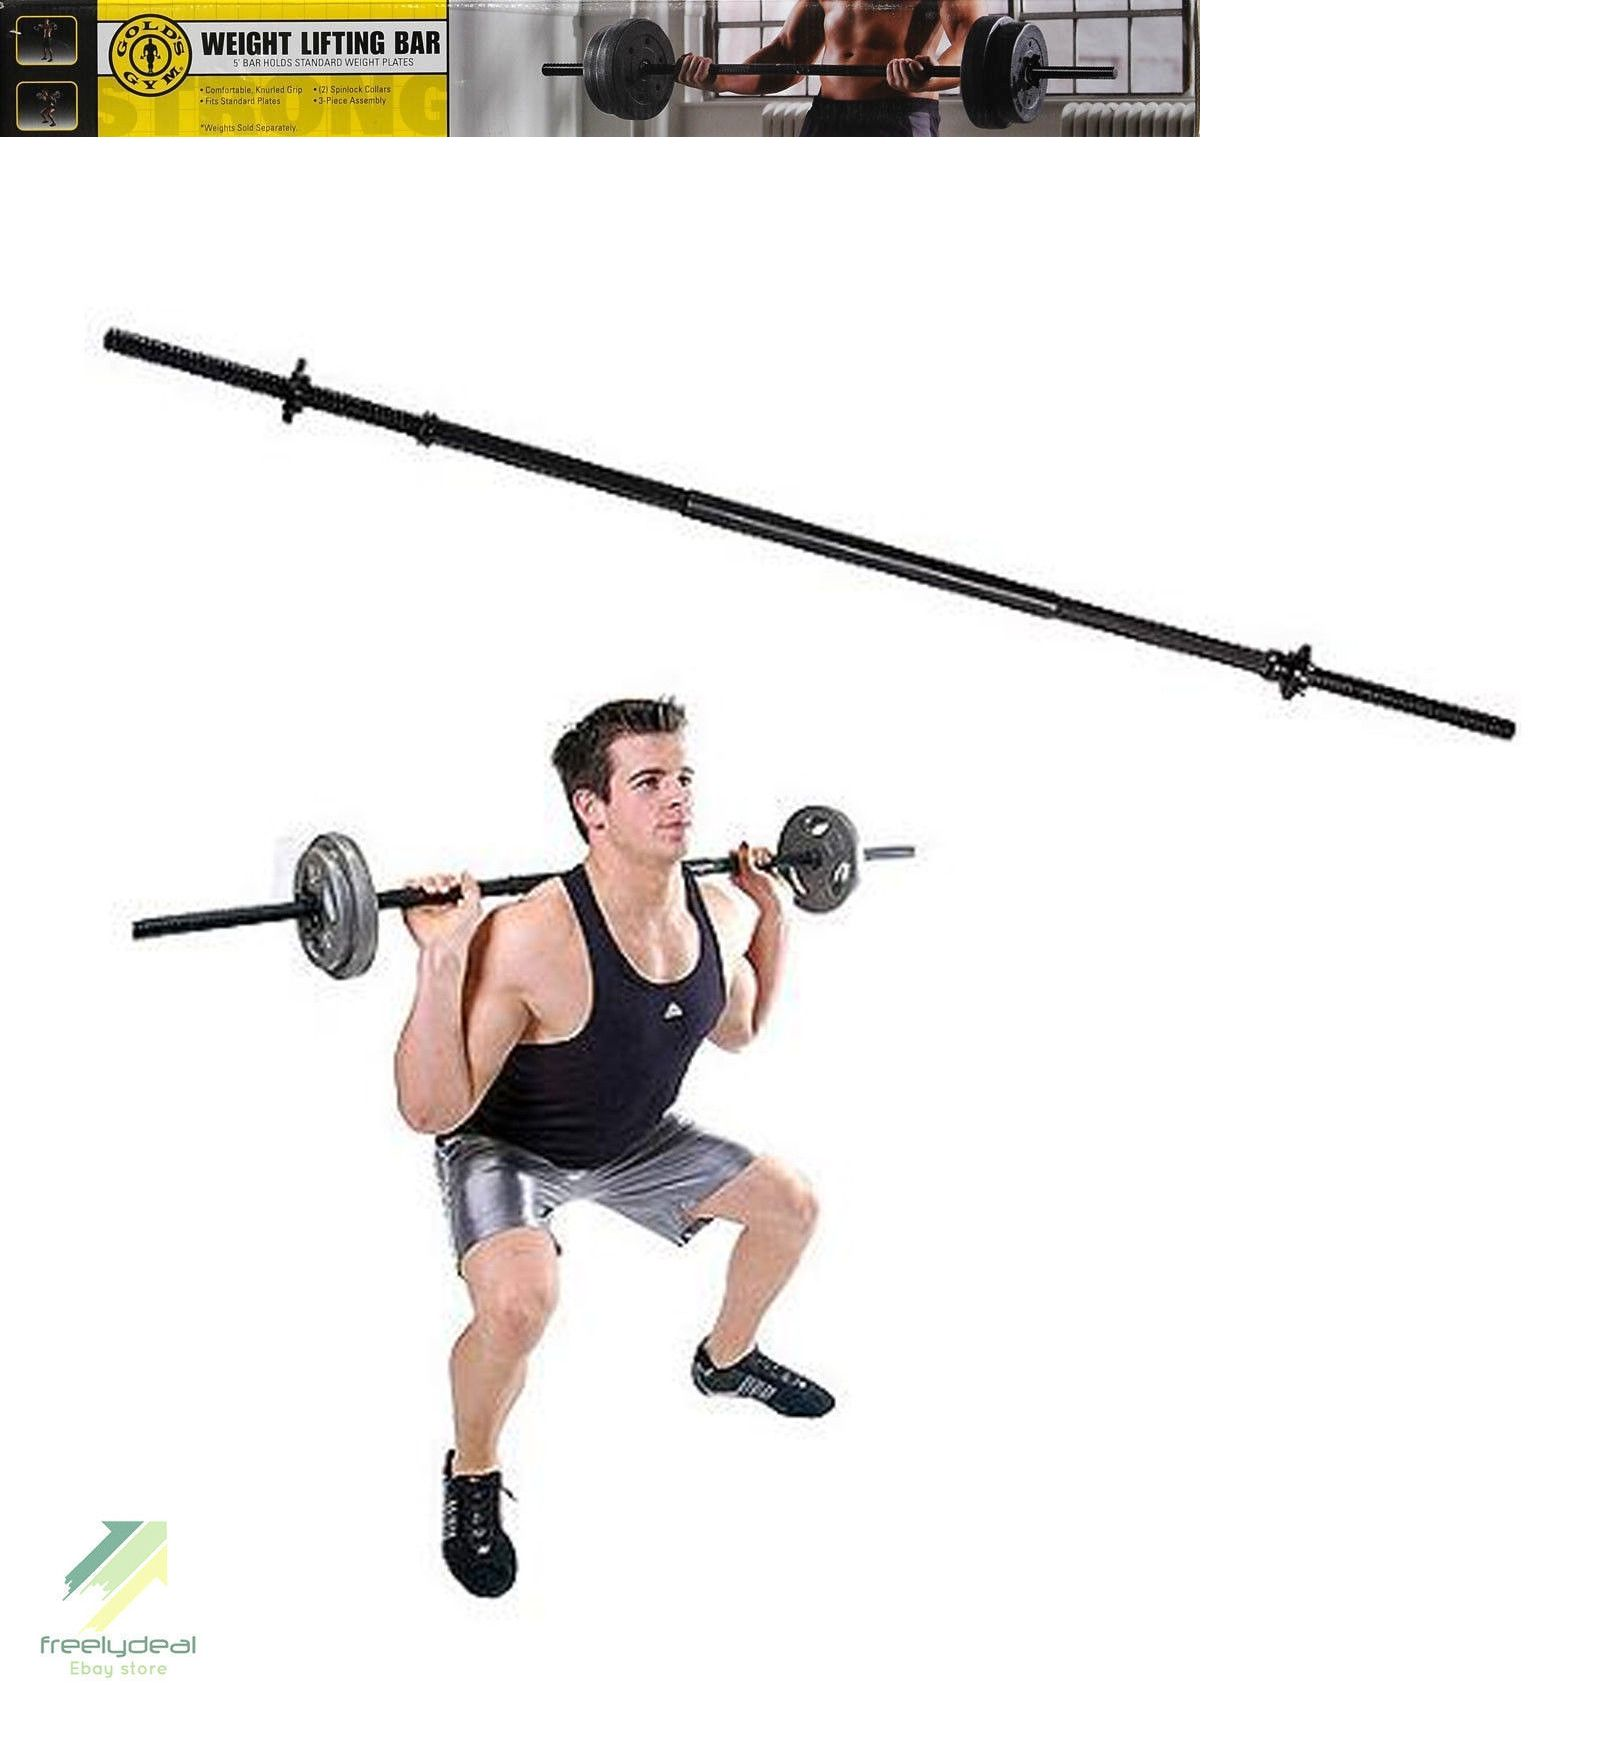 Barbells And Attachments 137864 New Gold S Gym Standard 5 Ft Weight Lifting Bar Fitness Exercise Workout Buy It Now Only 22 99 On Ebay